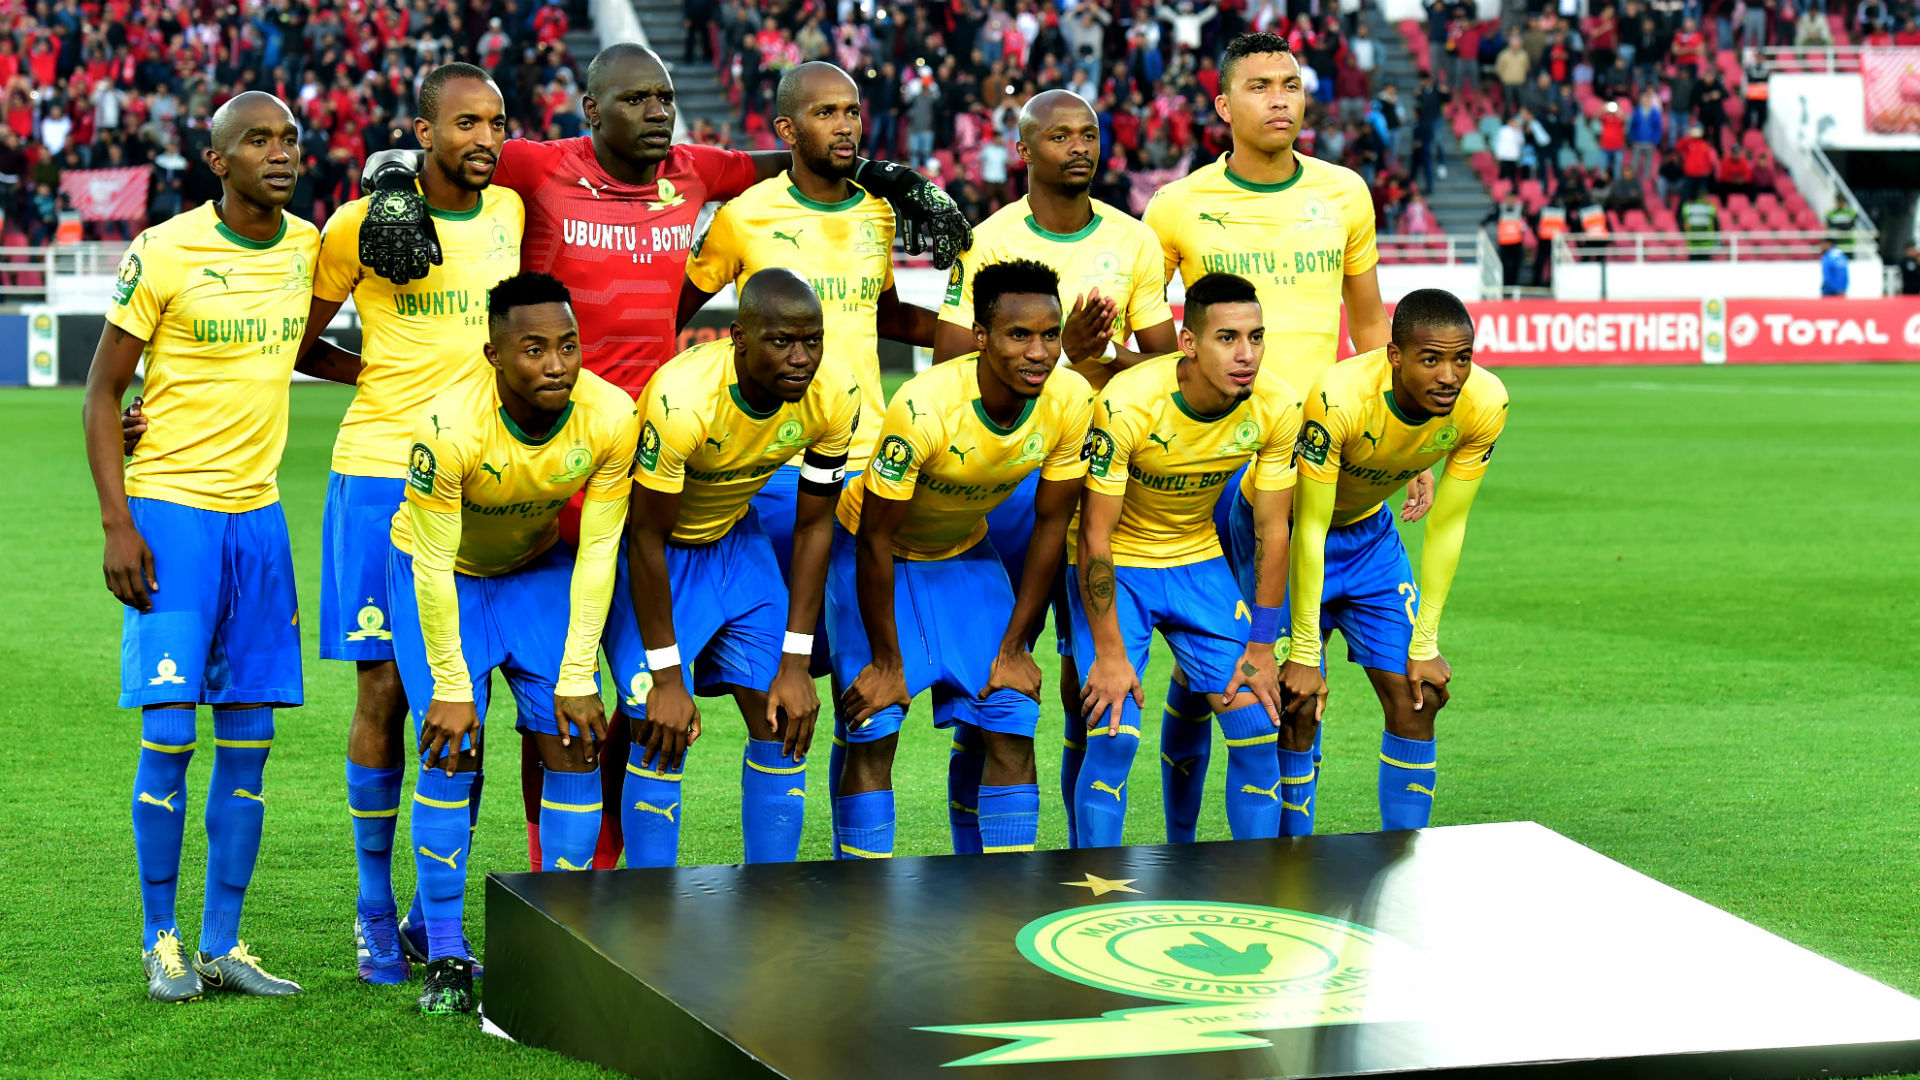 Caf Champions League: Cote d'Or vs Mamelodi Sundowns - Five key battles to watch